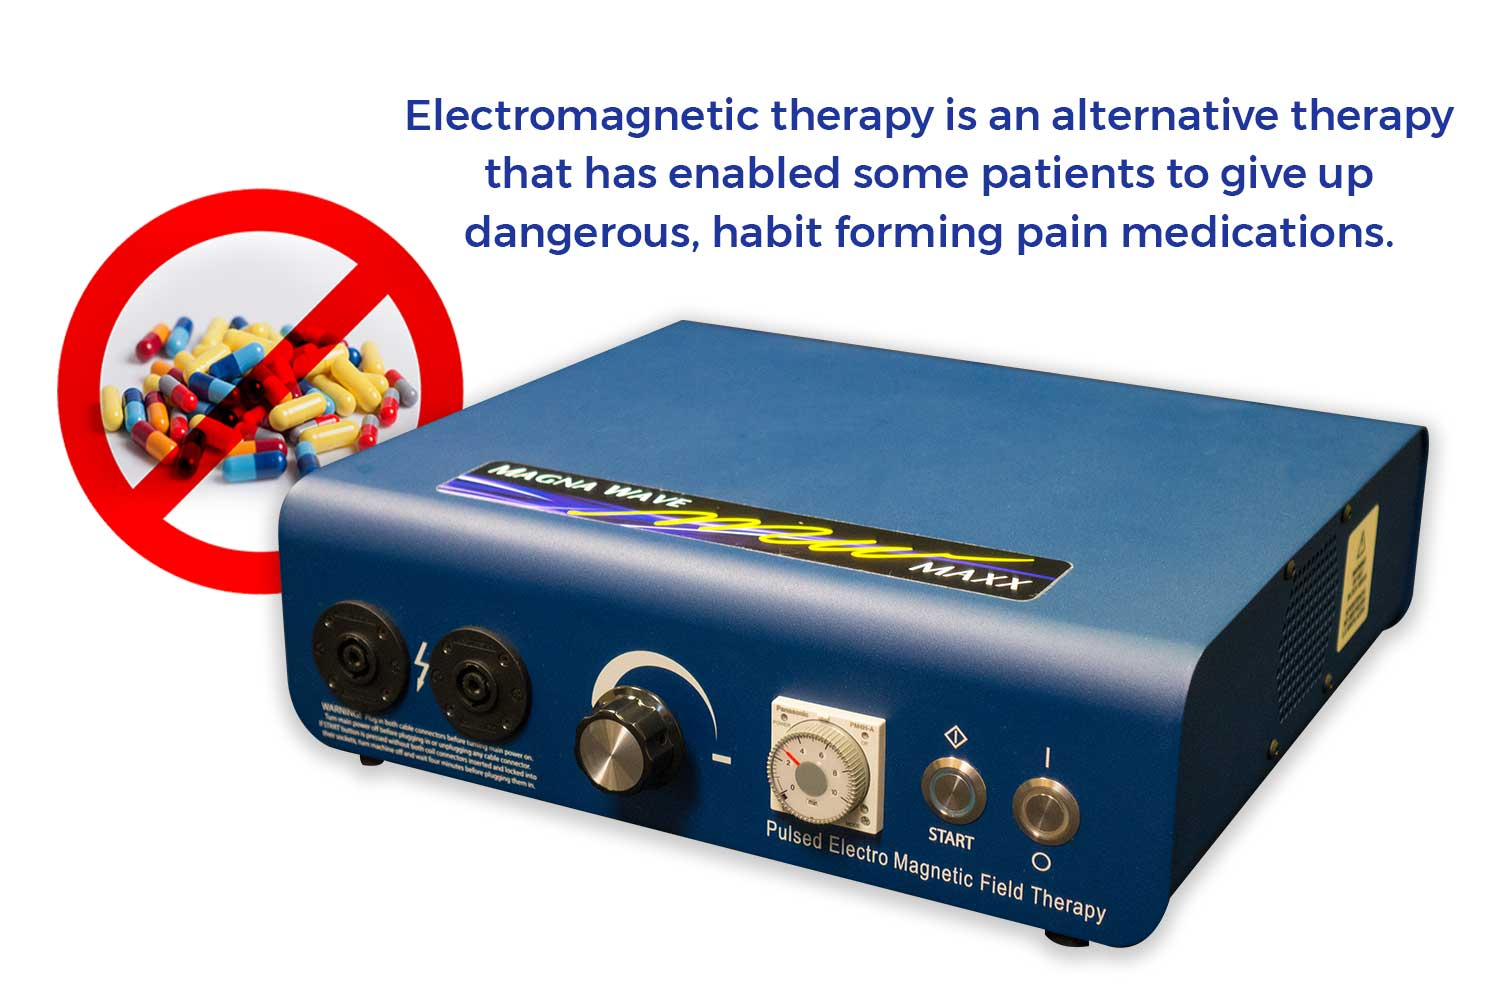 Electromagnetic therapy is an alternative therapy that has enabled some patients to give up dangerous, habit forming pain medications.